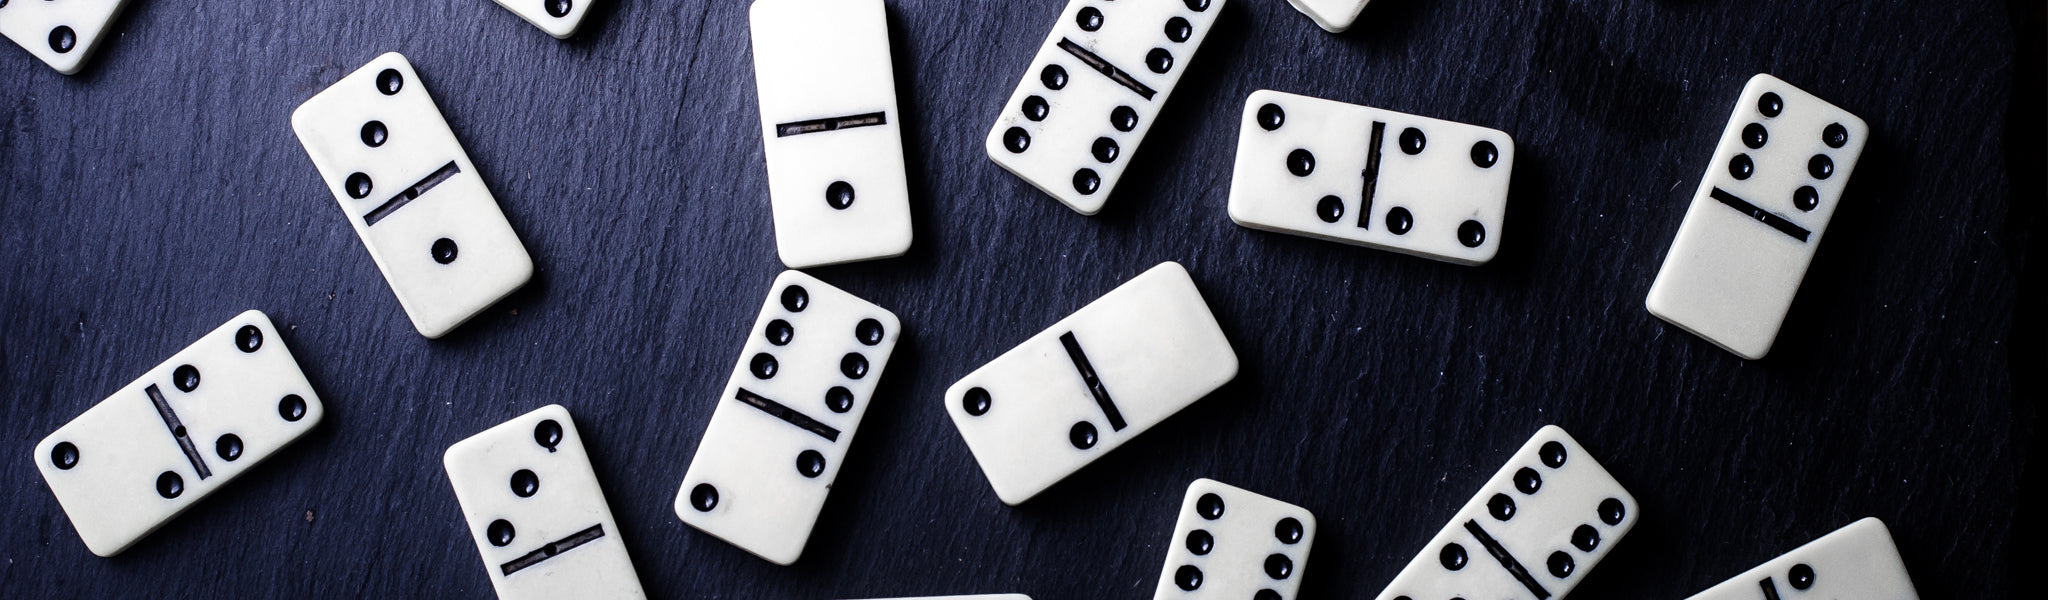 dominoes scattered on a dark wood table